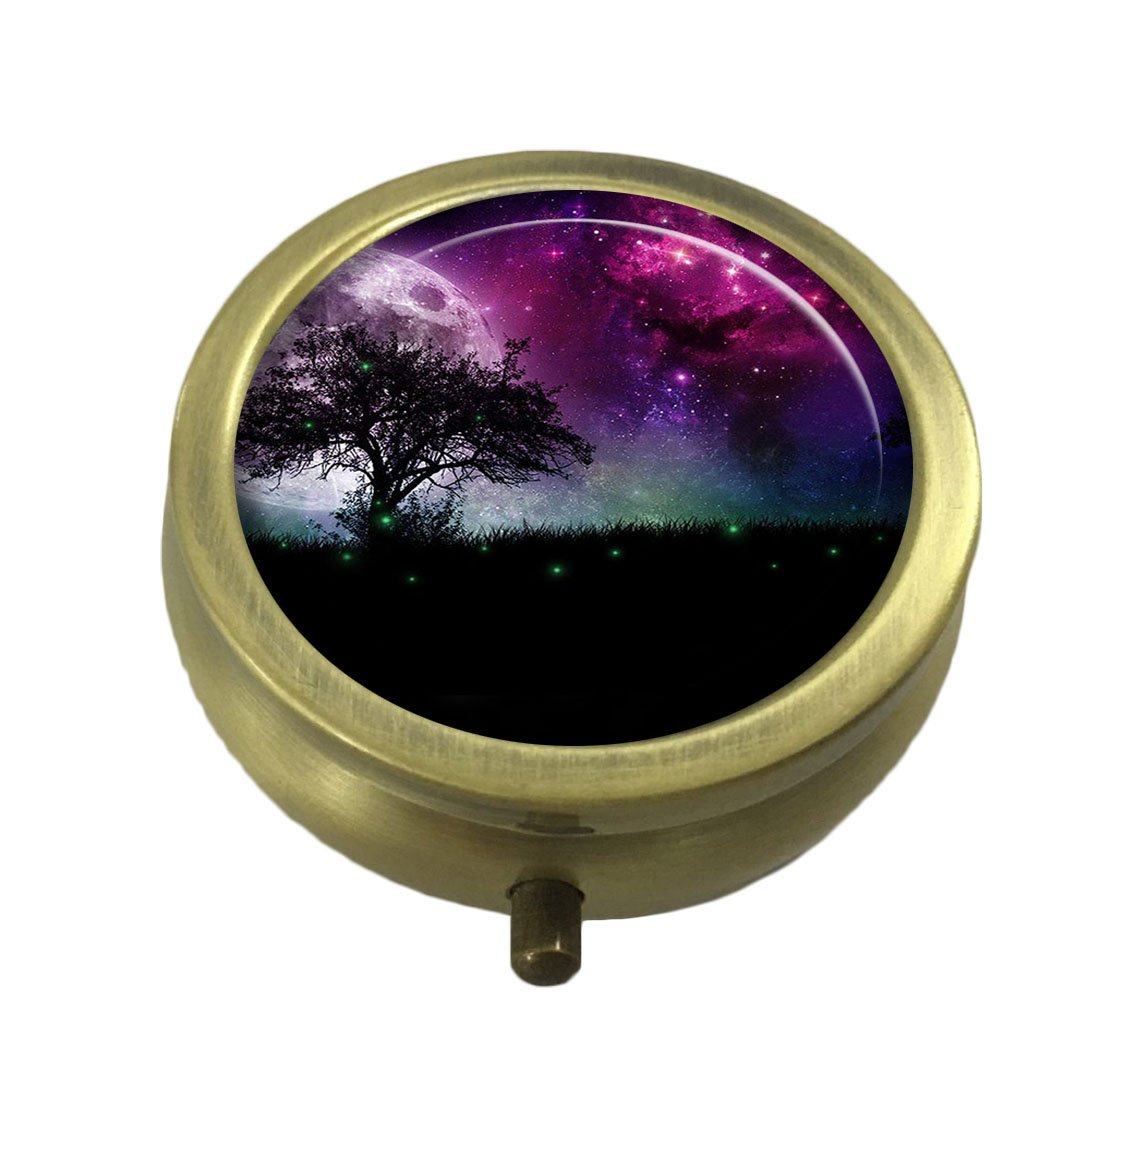 Guojew Natural Custom Fashion Round Pill Box Tablet Holder Pocket Purse Organizer Case Decoration Box